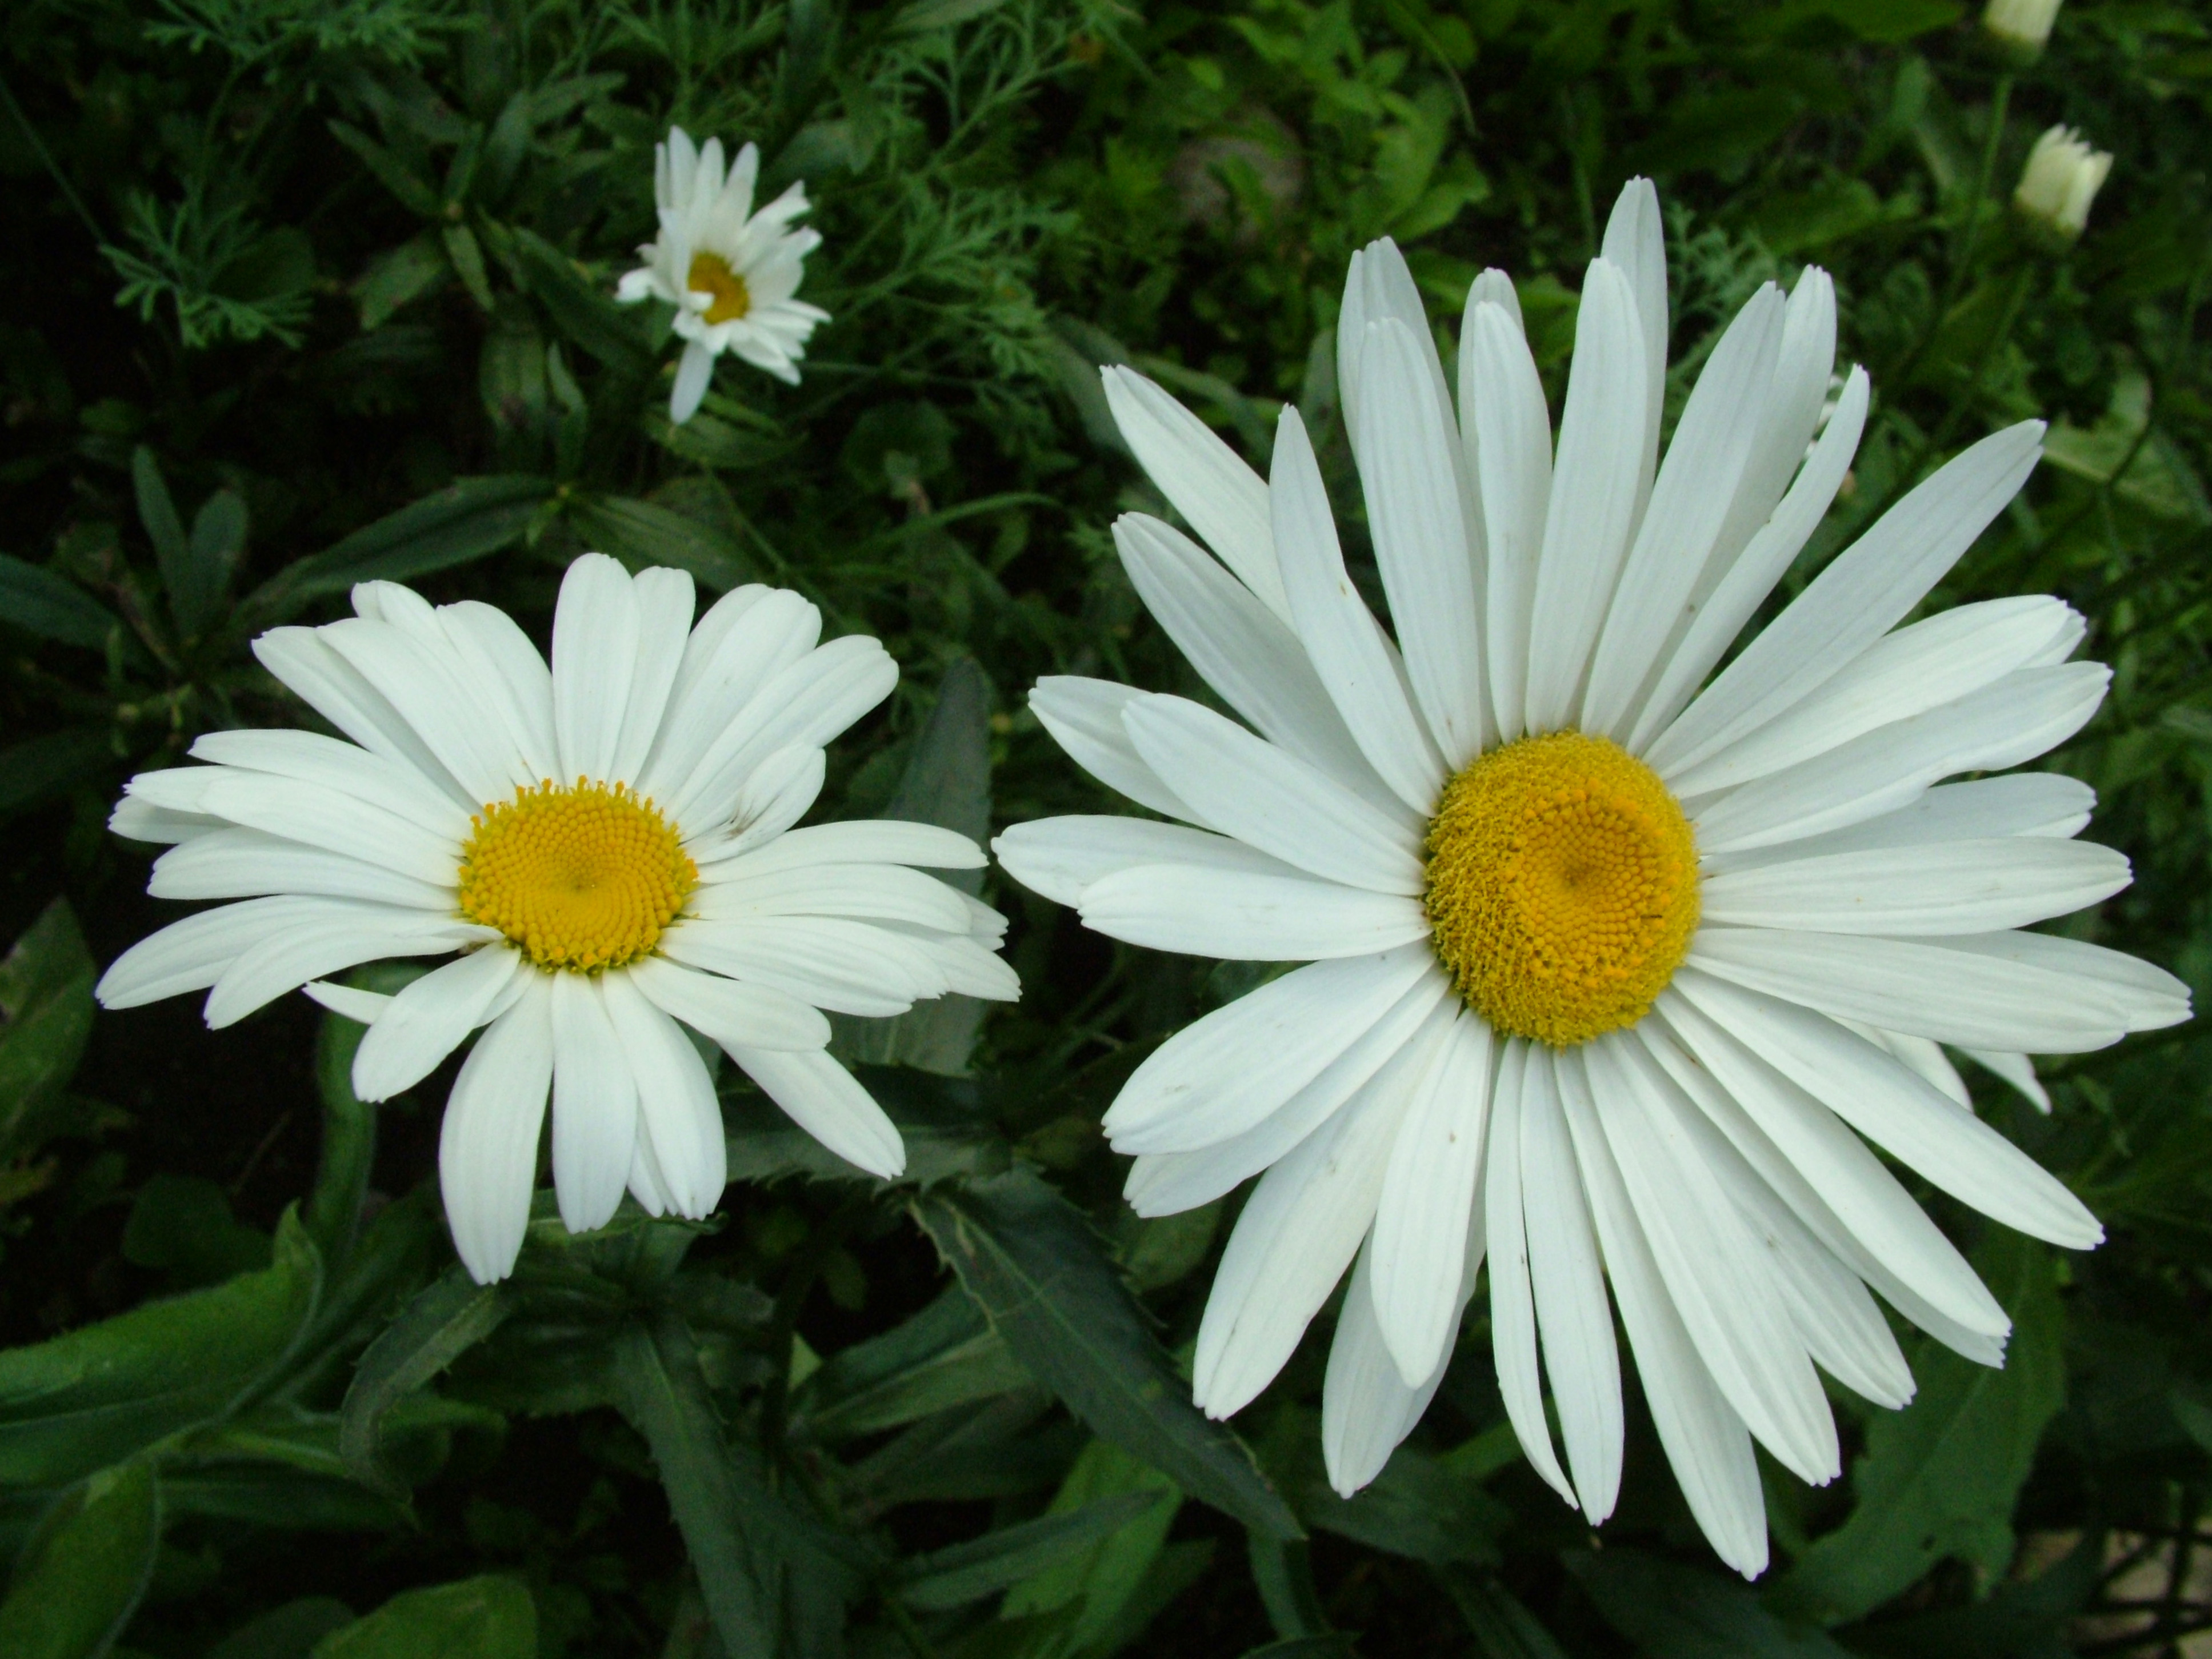 download perfect daisy flowers image in hi res